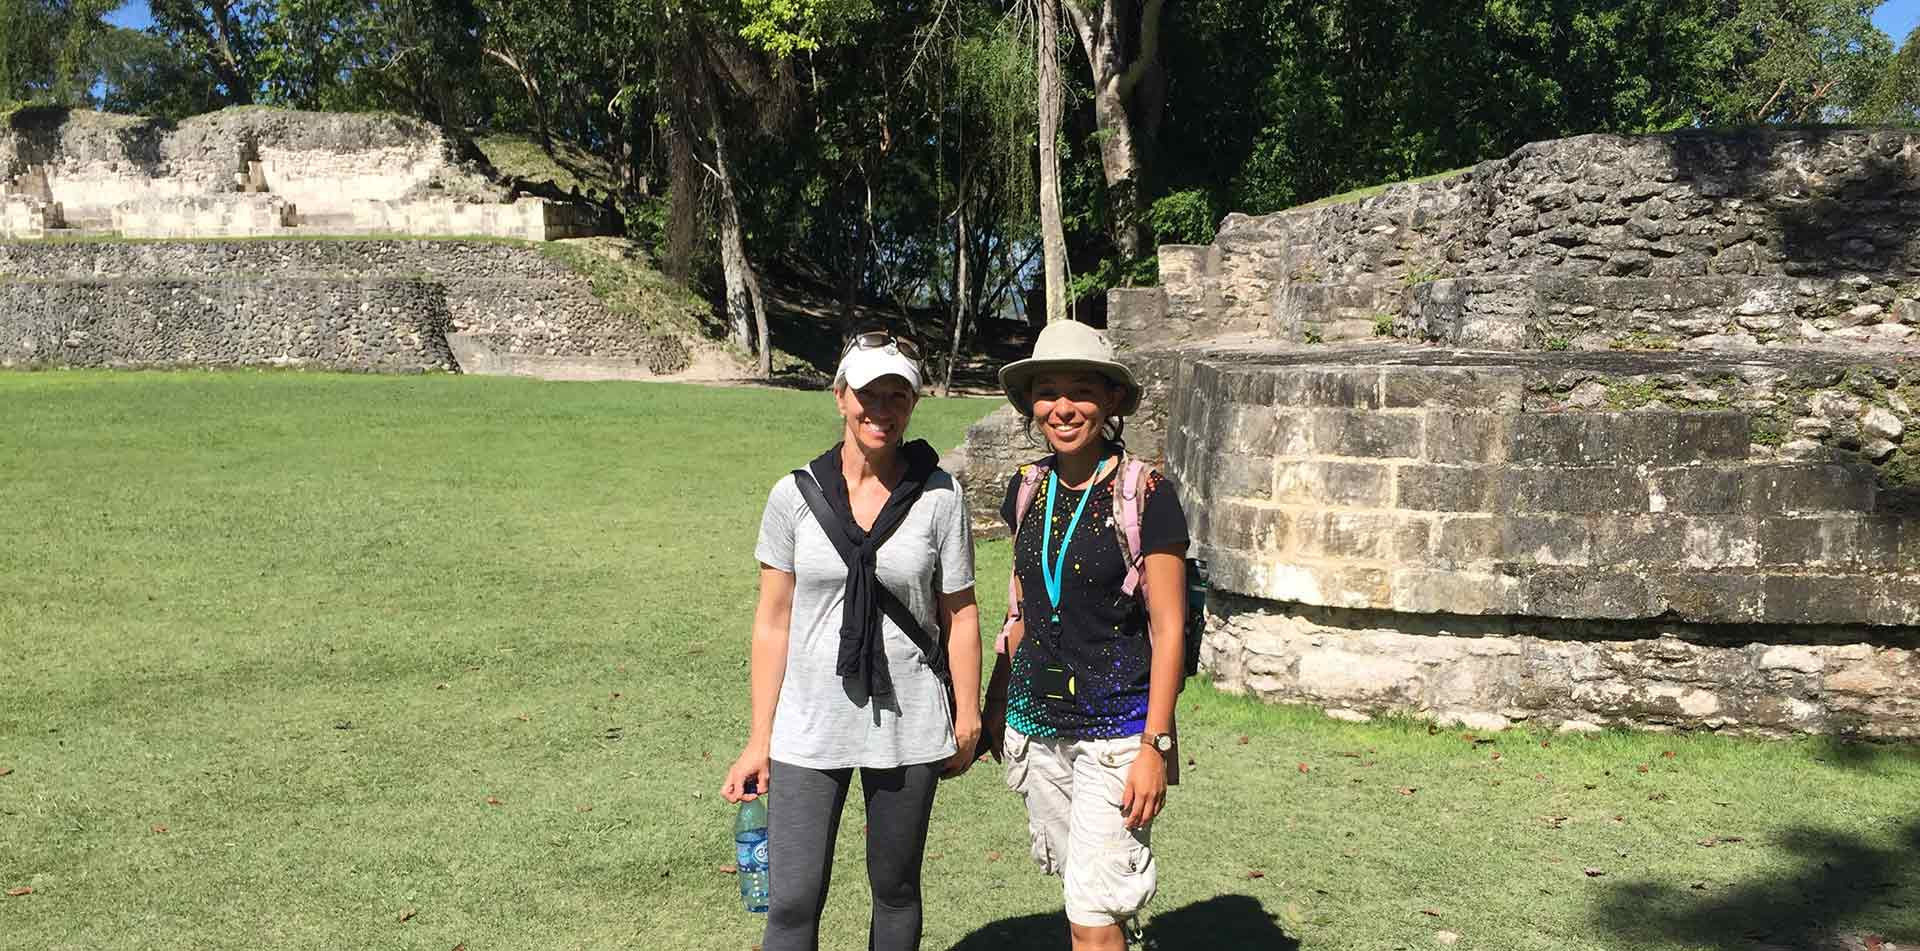 Central America Belize women smiling ancient Mayan ruins historical architecture - luxury vacation destinations